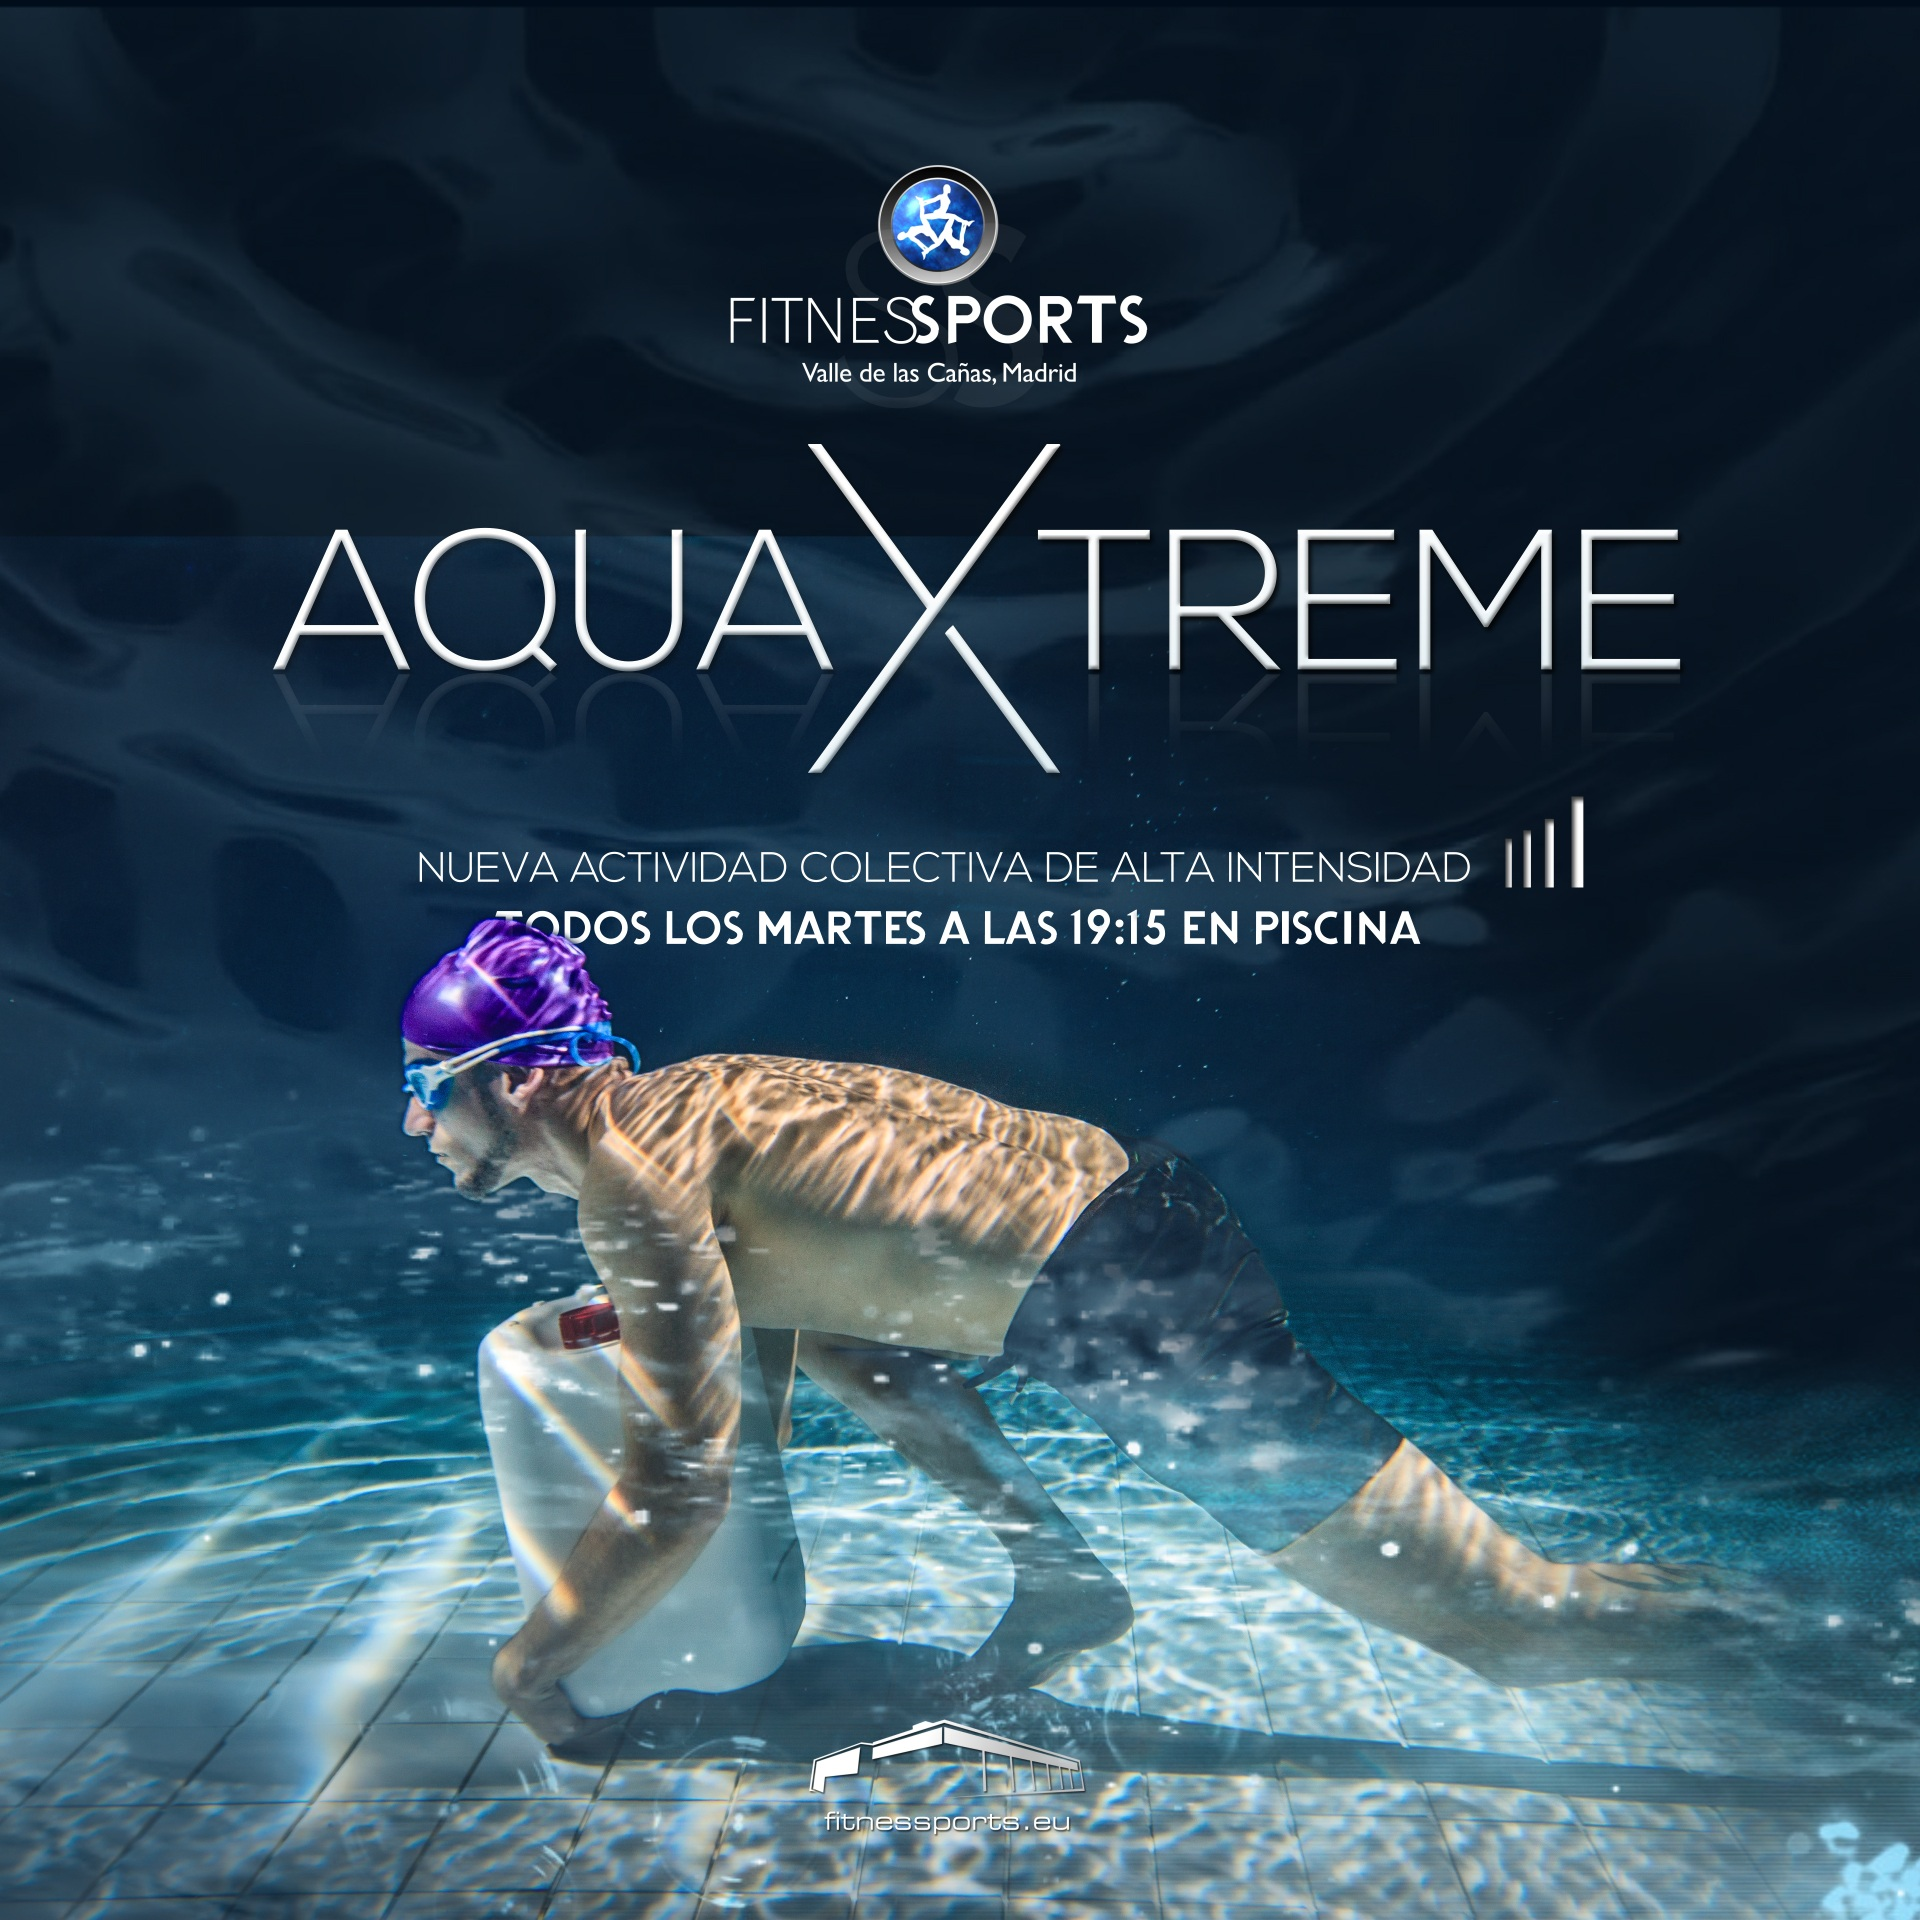 aquaxtreme-atividad-piscina-fitness-sports-valle-las-canas-gimnasio-en-madrid-2016-box